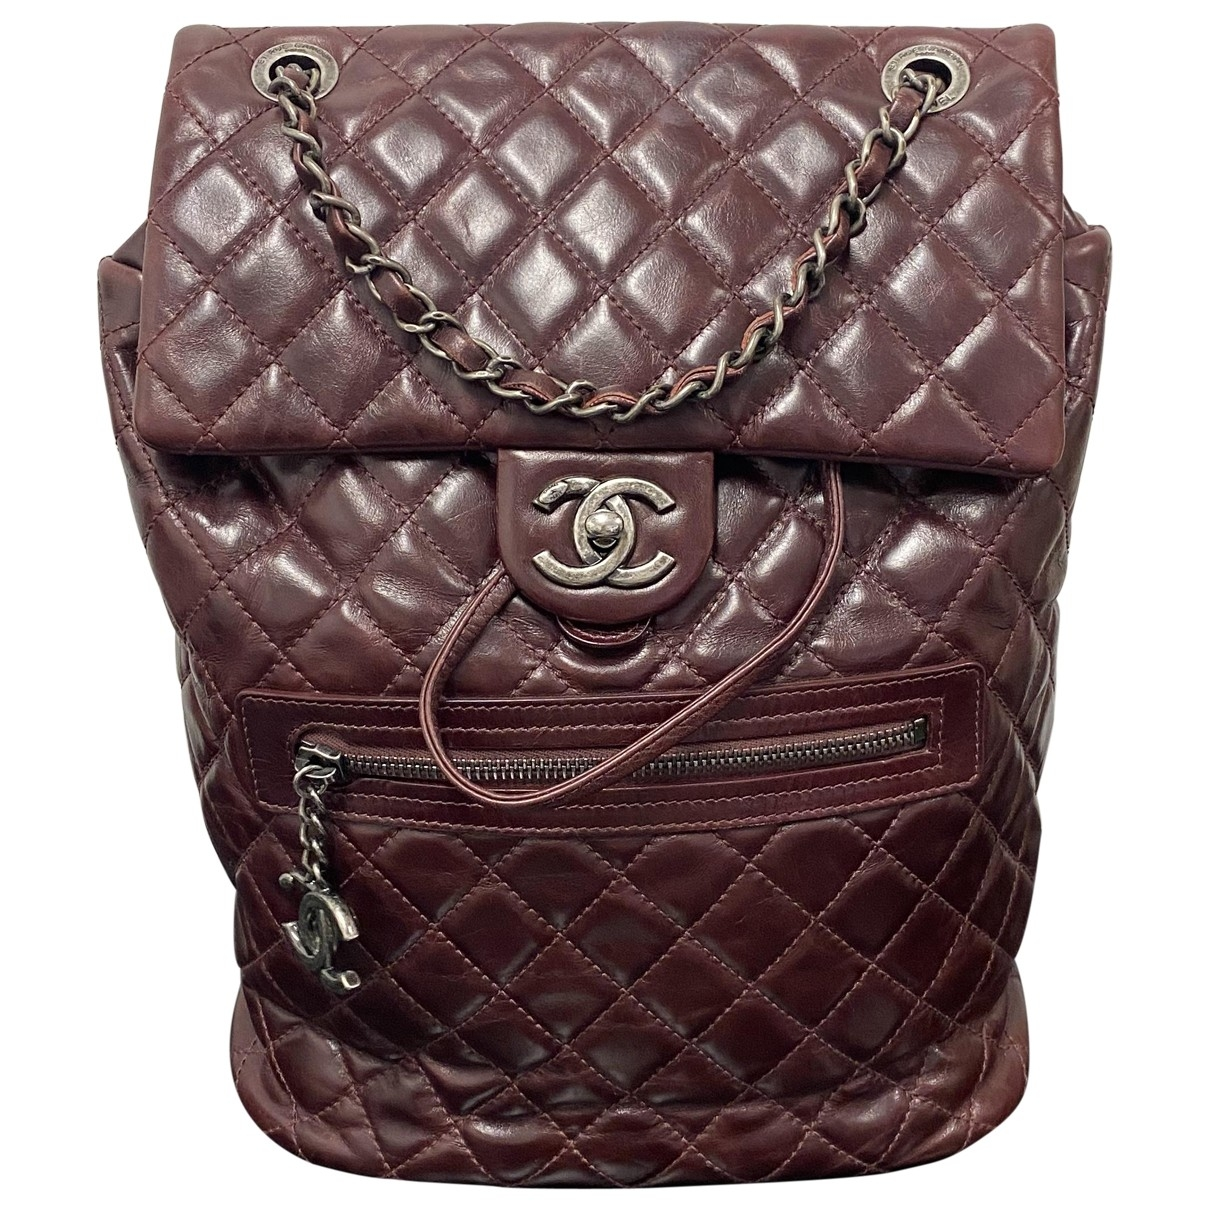 Chanel Timeless/Classique Burgundy Leather backpack for Women \N